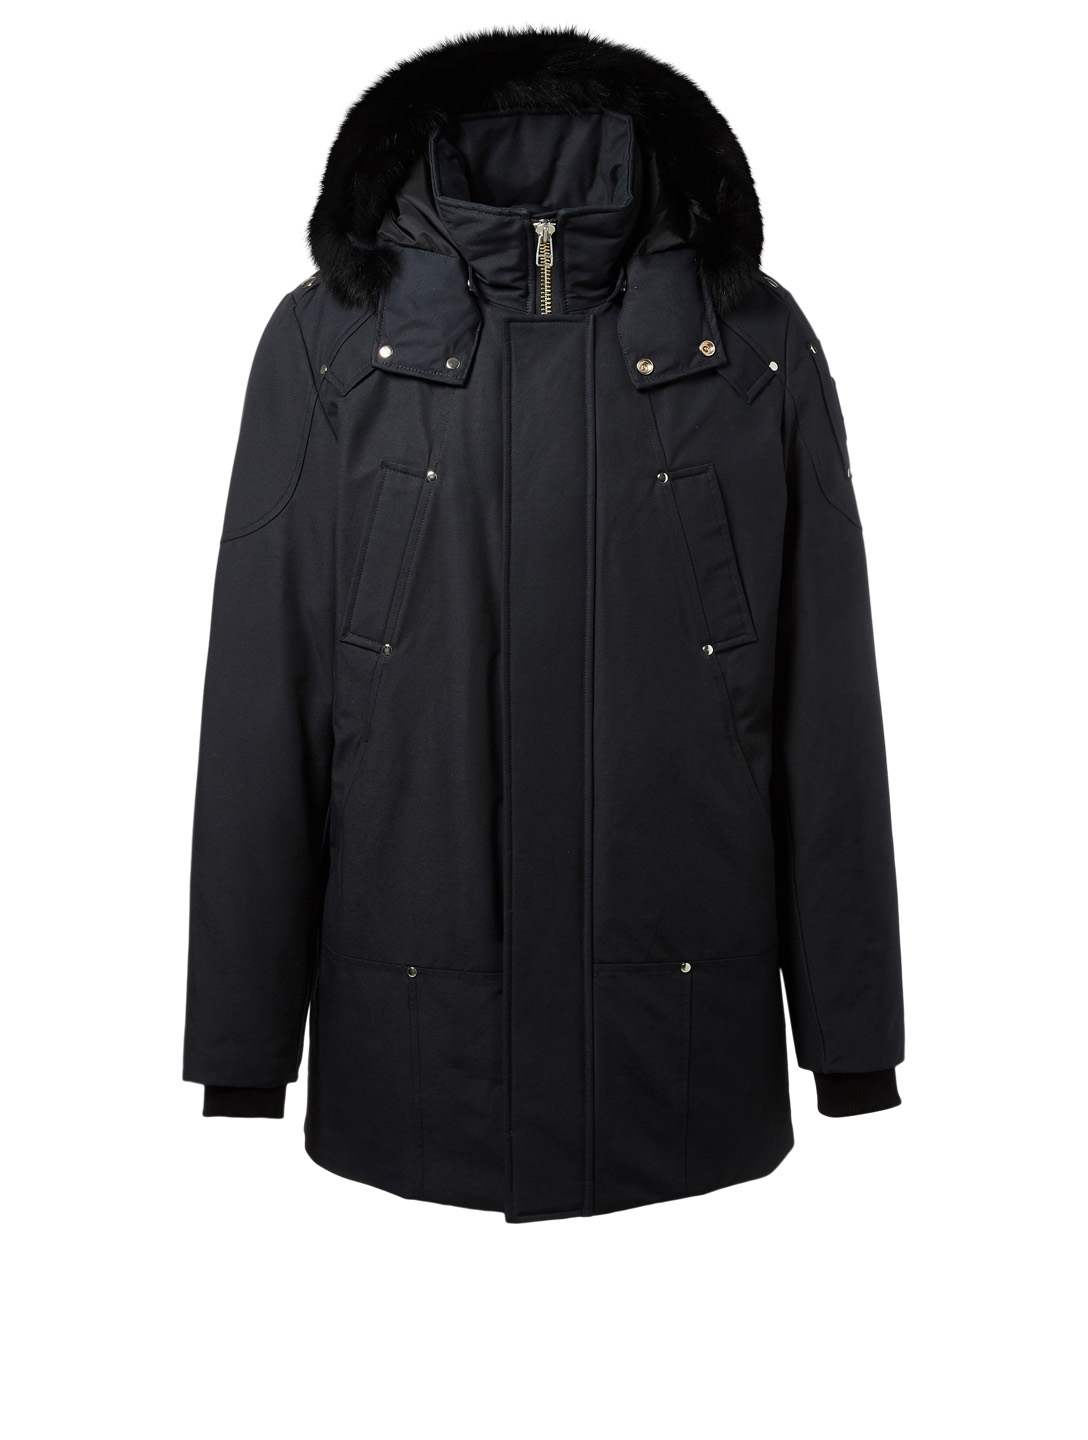 MOOSE KNUCKLES Stirling Parka With Fur Trim Men's Blue